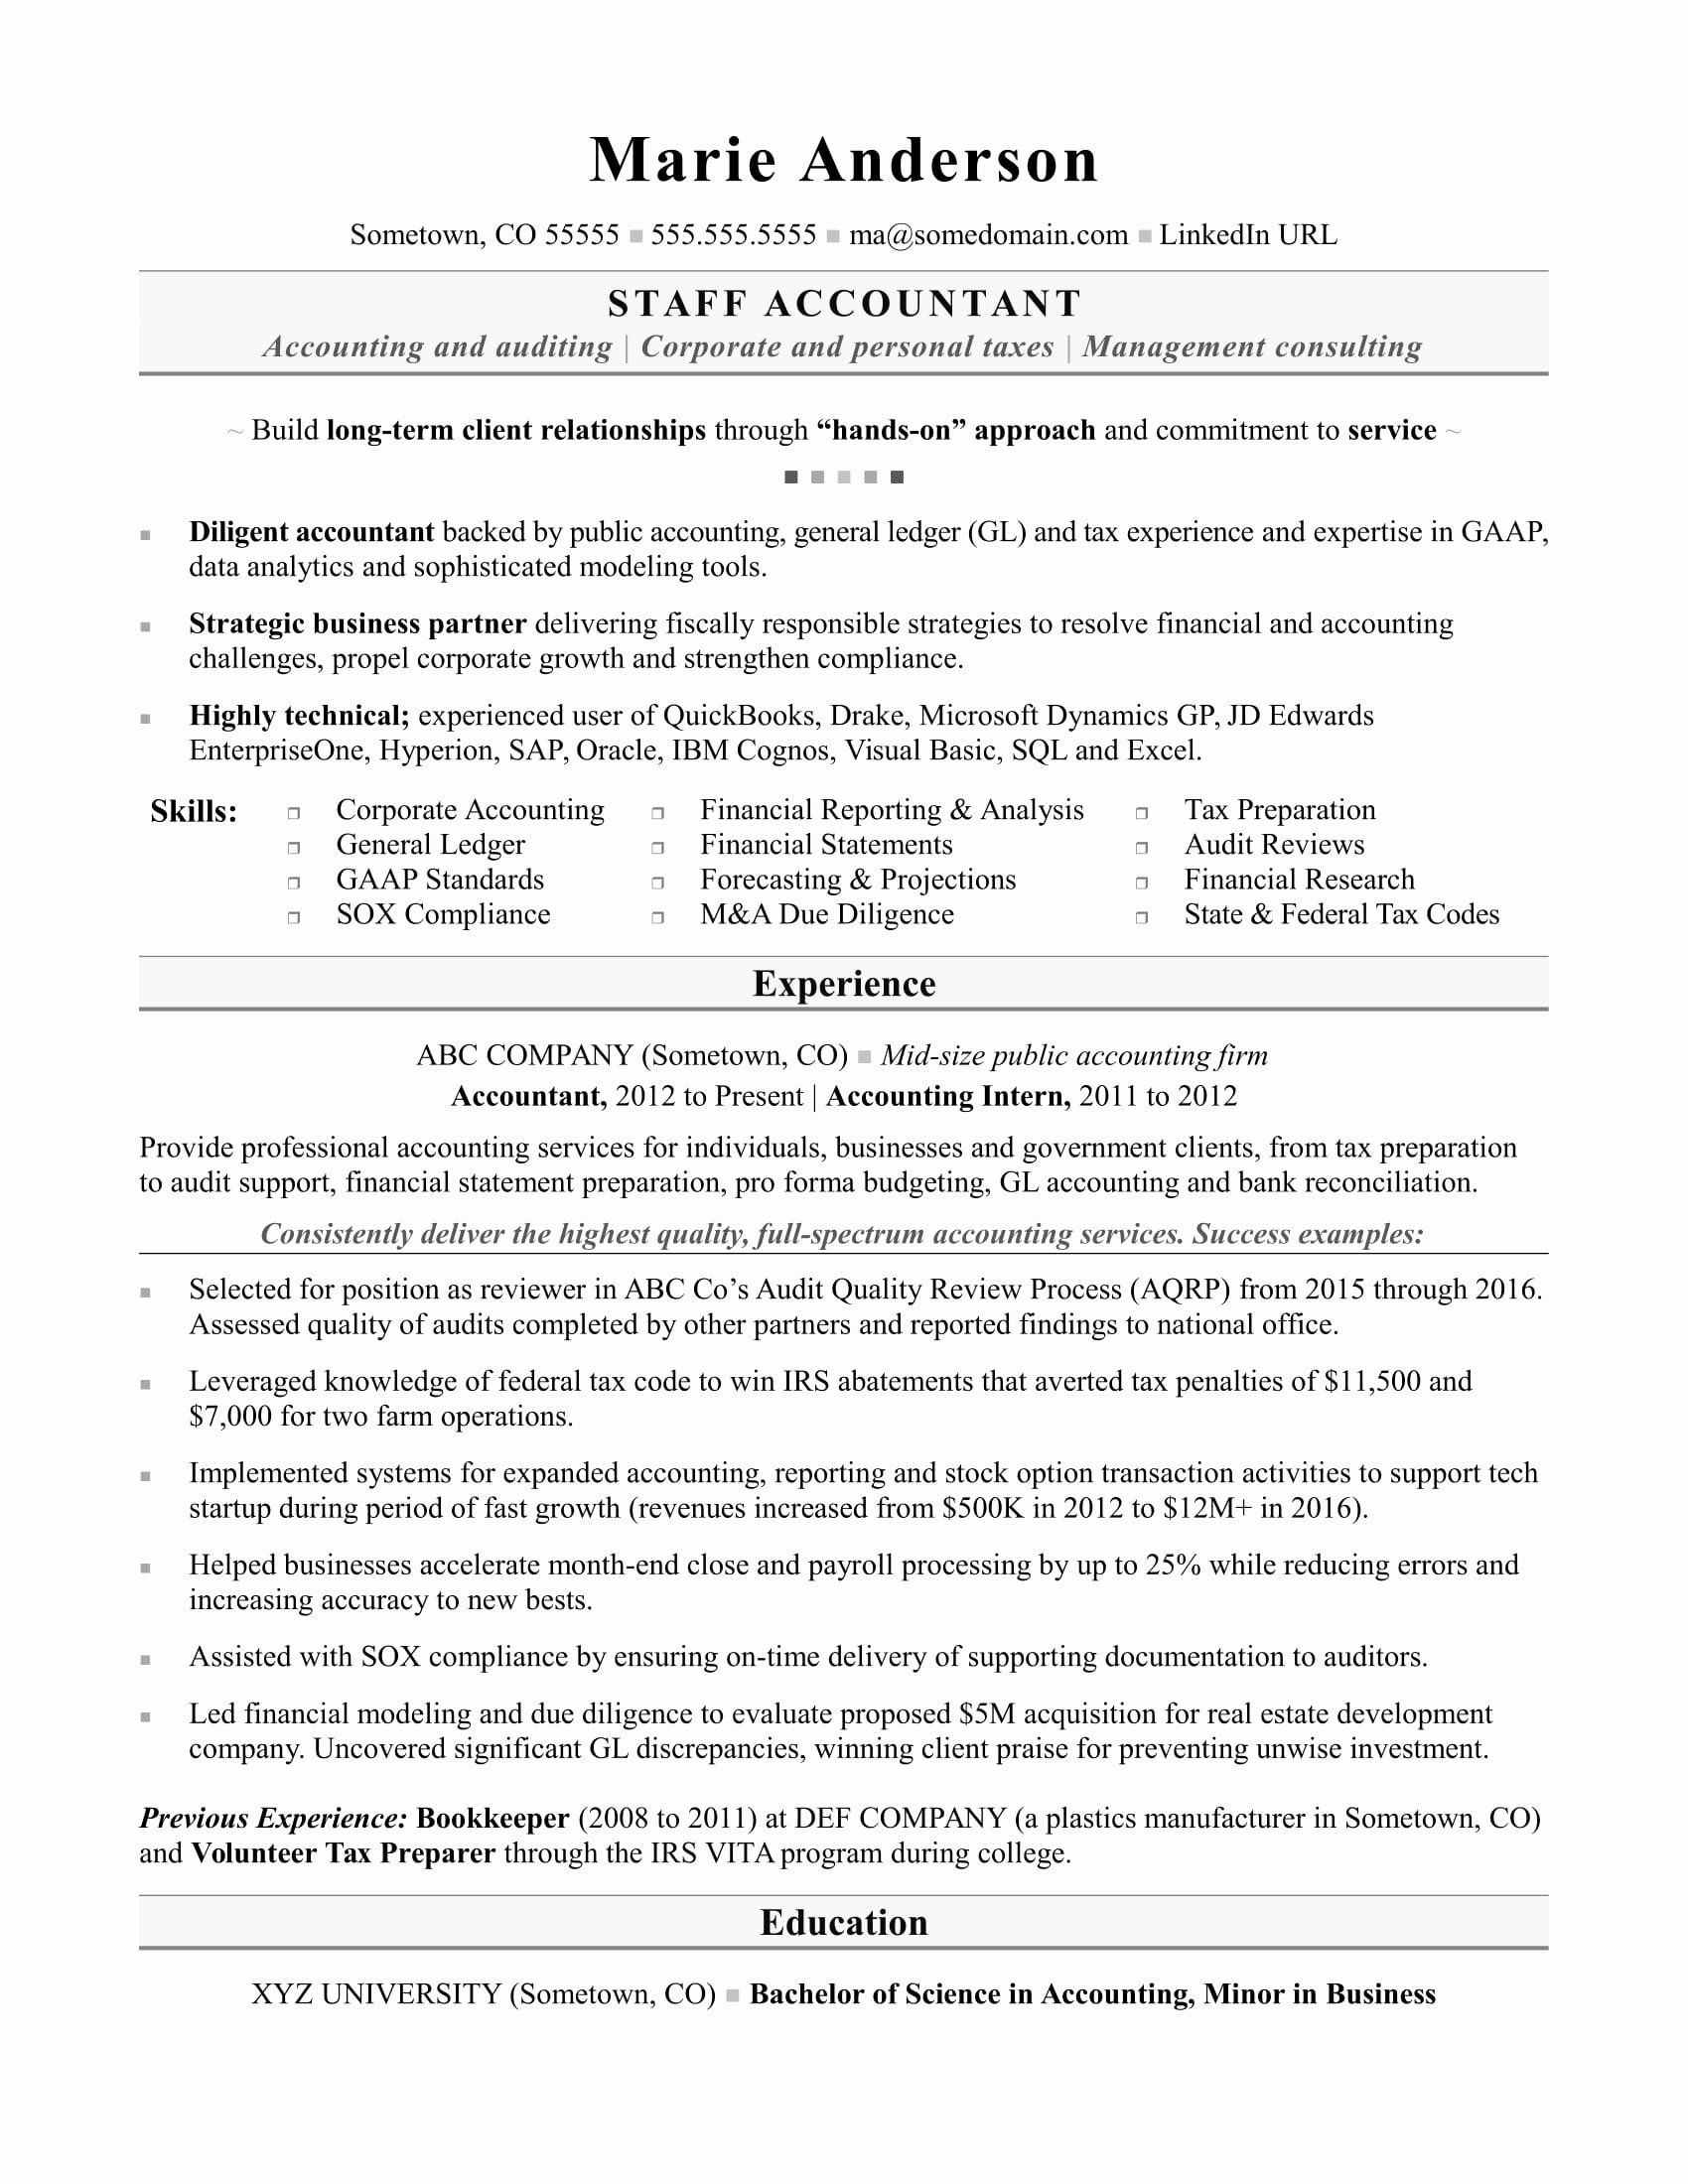 staff accountant resume examples fresh accounting sample job samples description for Resume Accountant Job Description For Resume